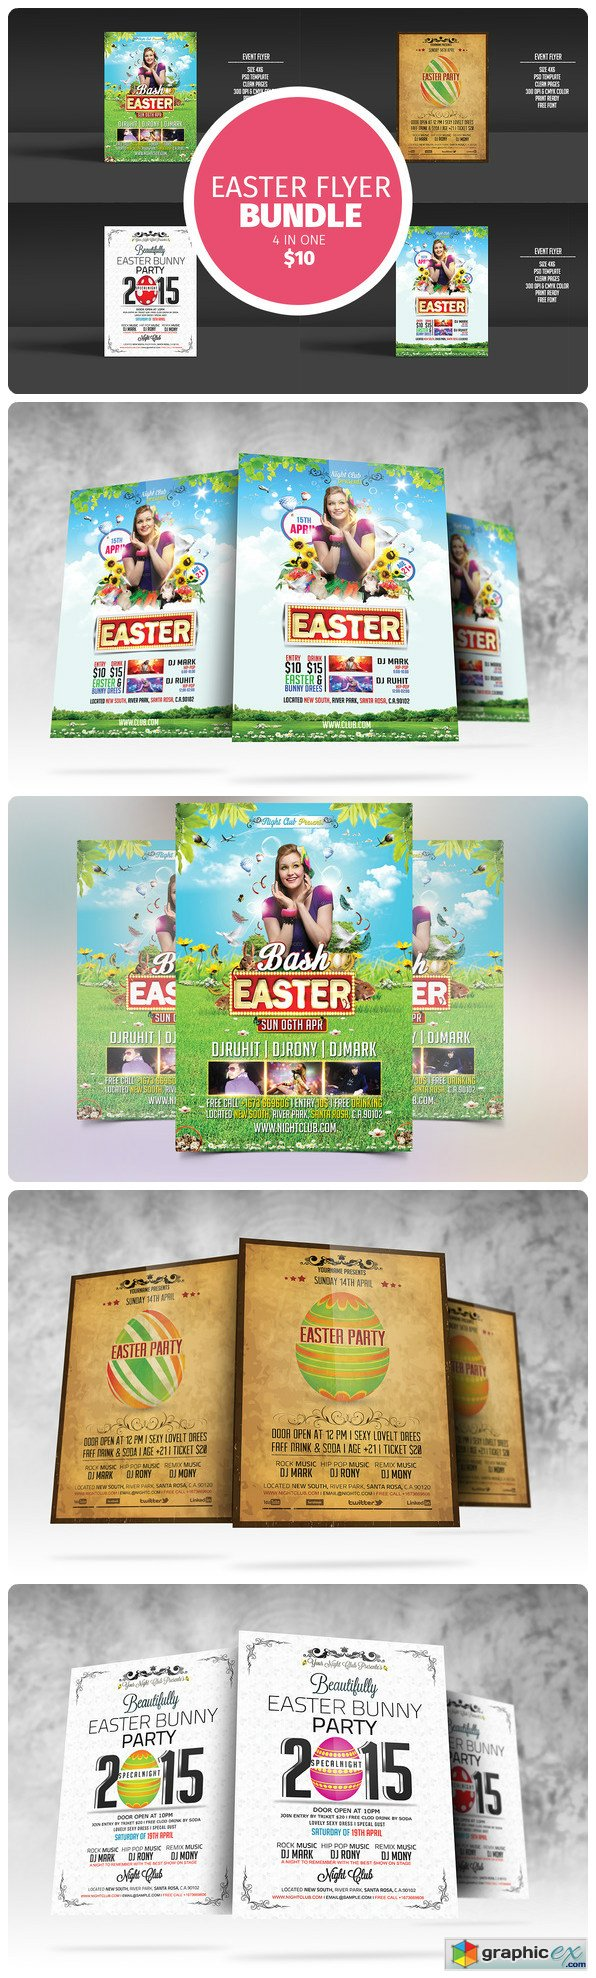 Easter Flyer Bundle